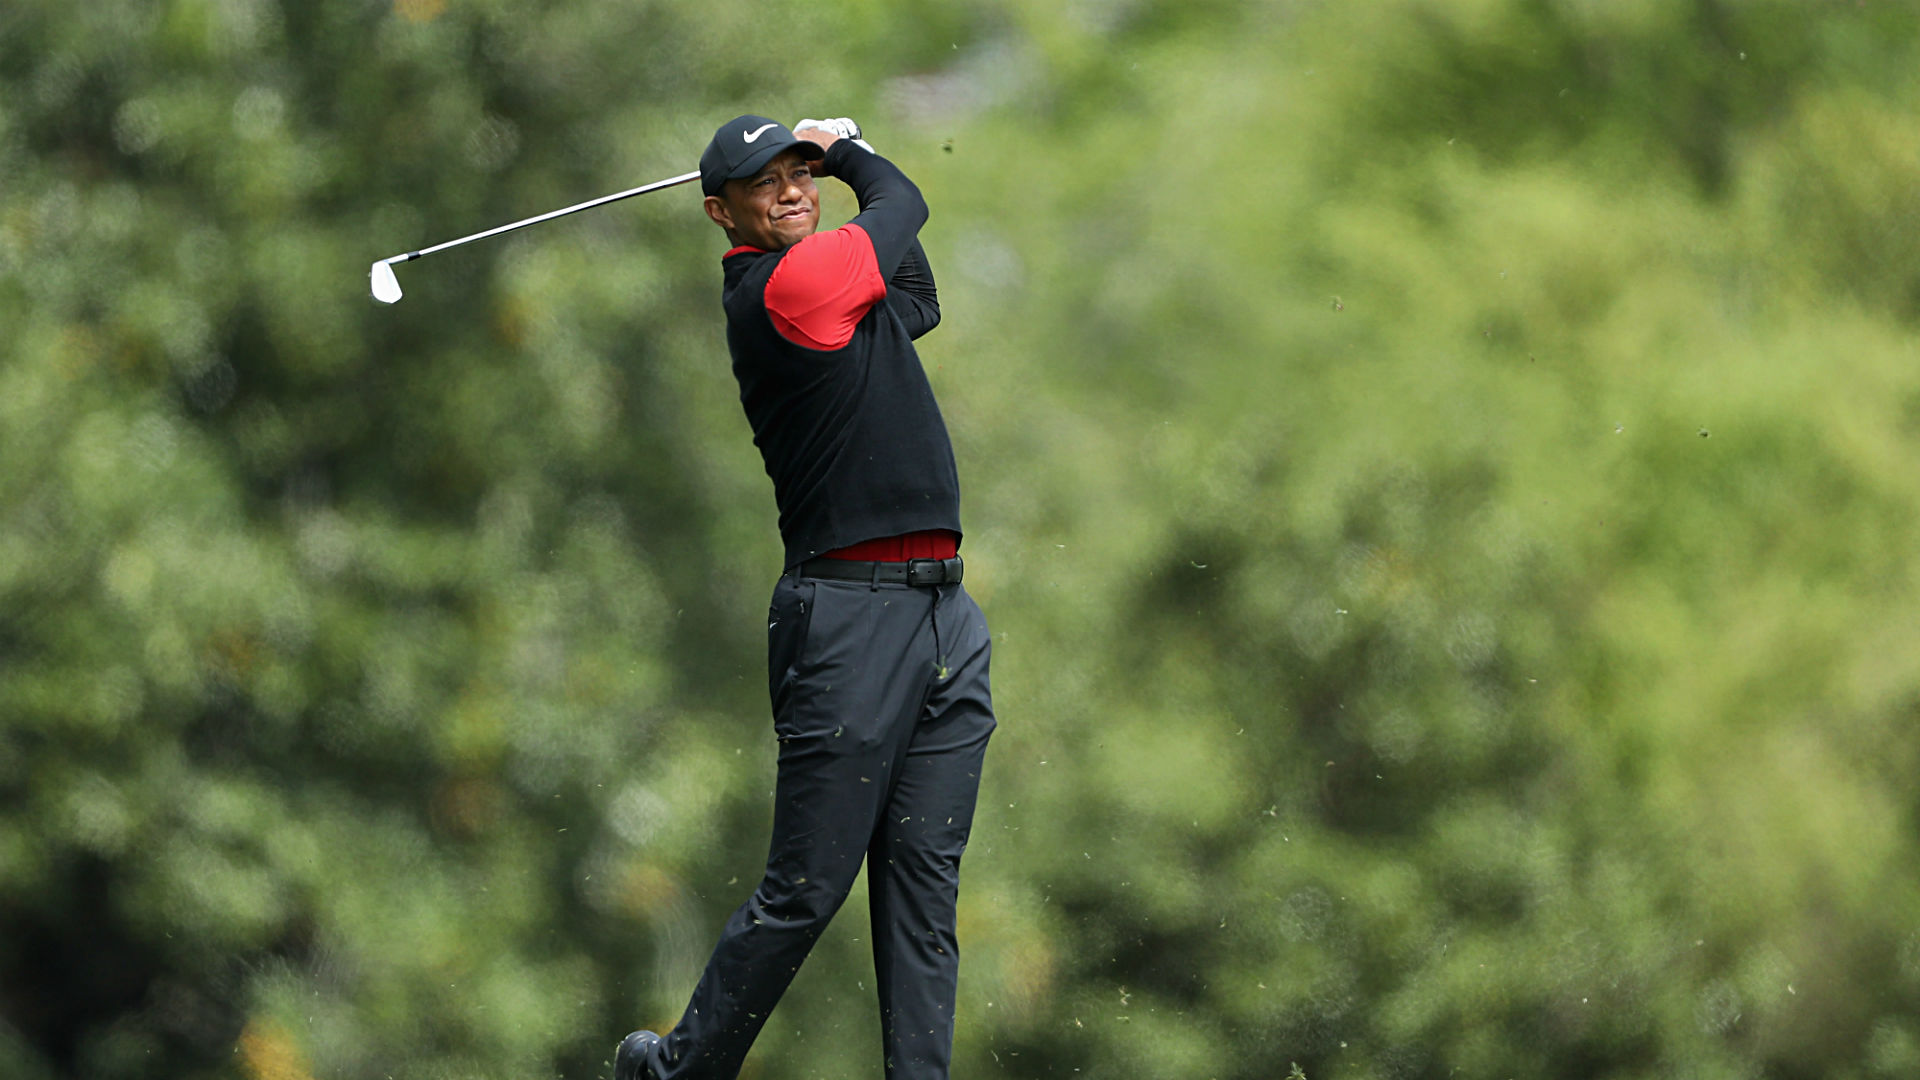 Tiger-Woods-Masters-040419-Getty-Images-FTR